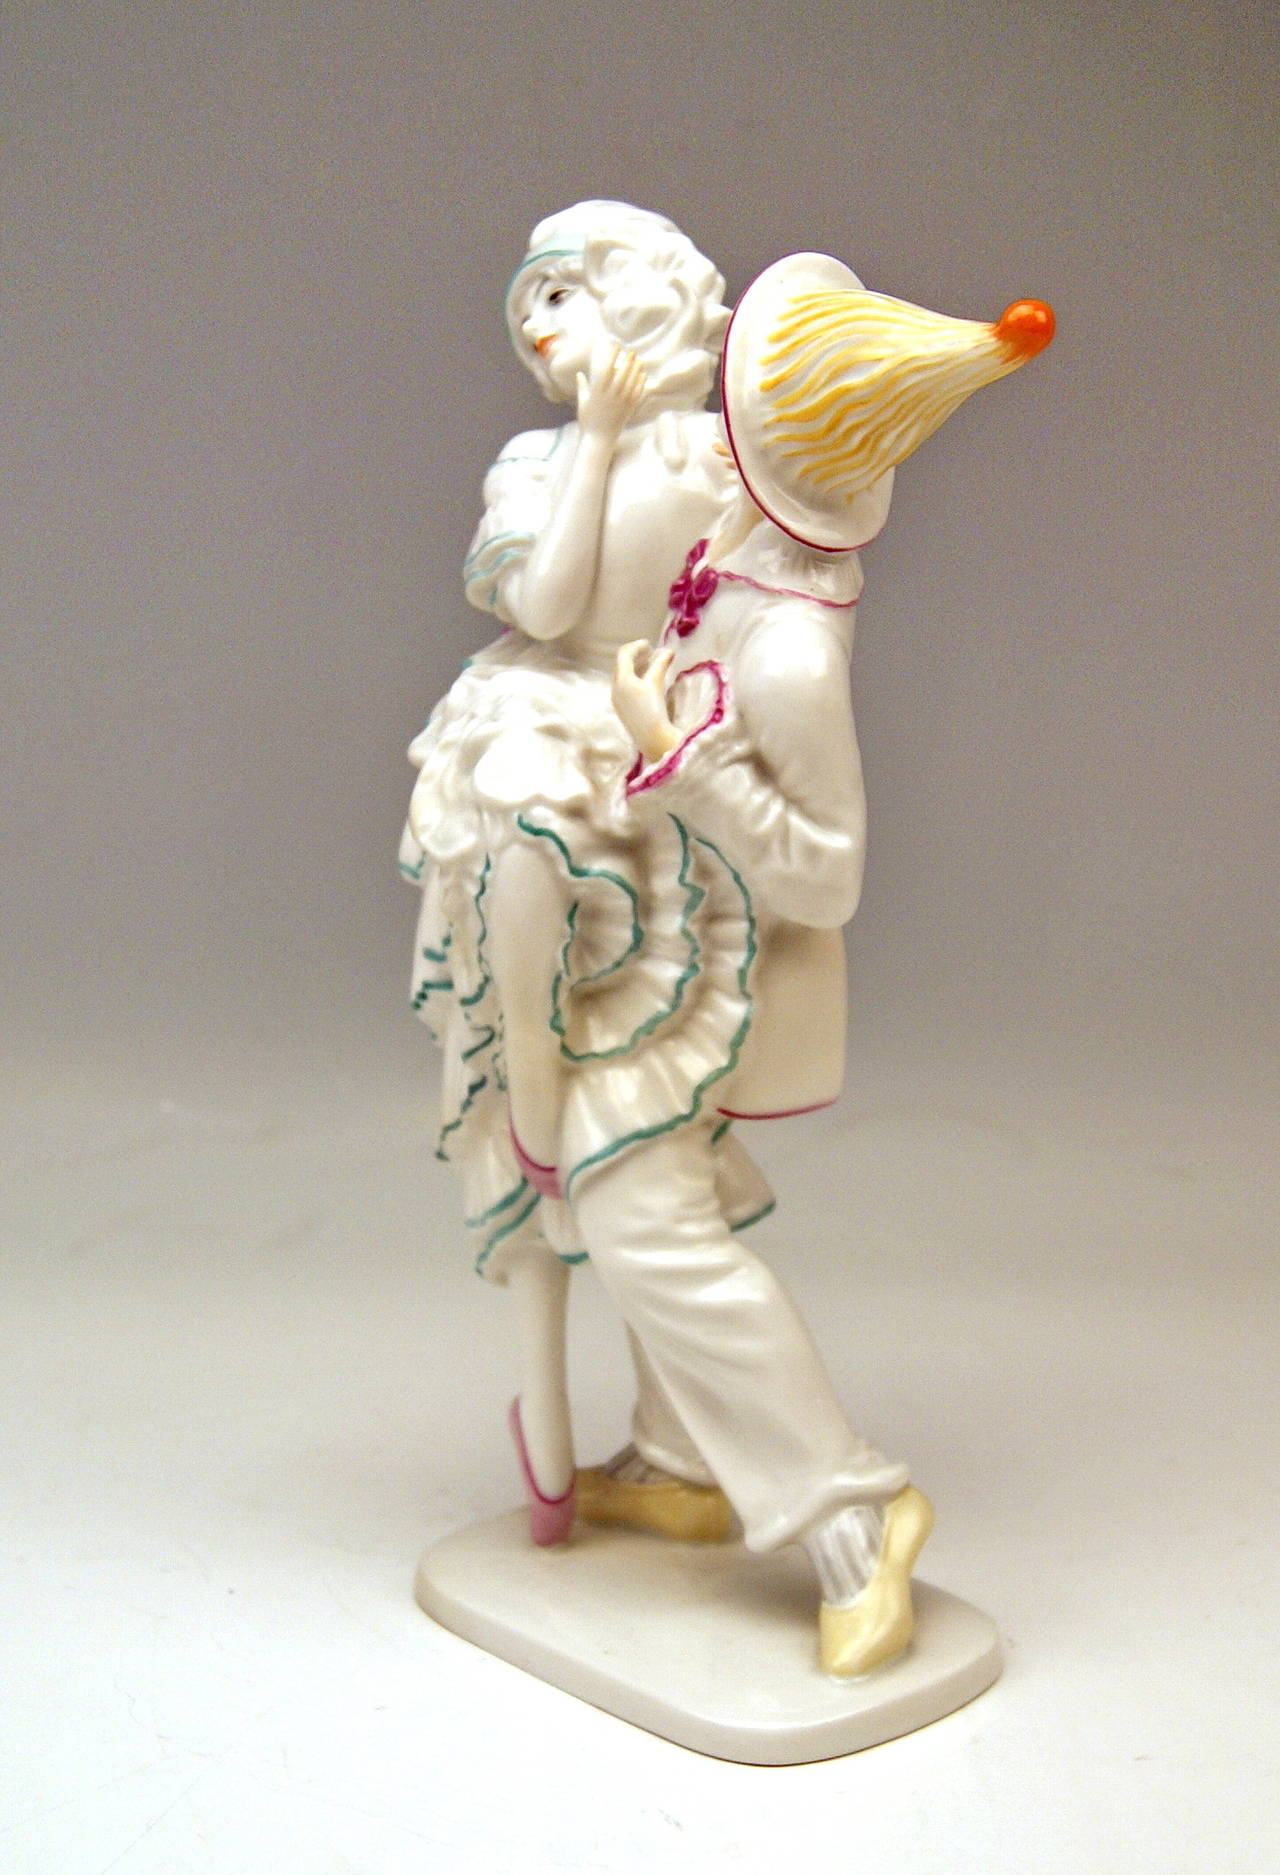 Gorgeous Rosenthal Germany Dancing Couple modelled by Constantin Holzer-Defanti 